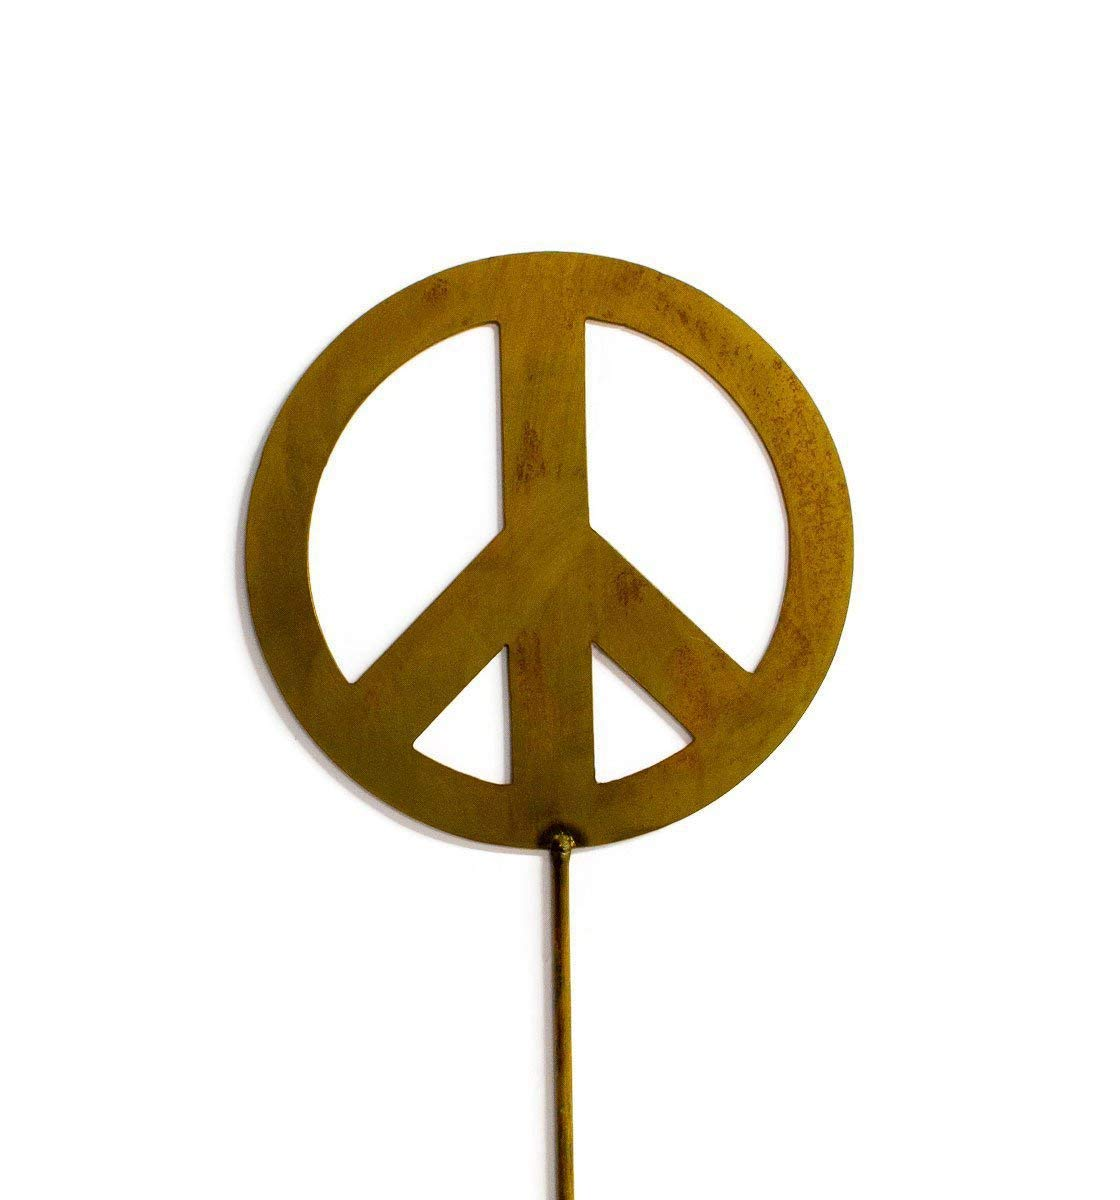 Peace Sign Decorative Metal Garden Stake, Whimsical Garden Idea, Metal Garden Art, Outdoor Lawn and Patio Decor, Backyard Sculpture, Elegant Garden Design and Landscape Decoration, Outdoor Art, Lawn Ornament, Lawn Art, Modern Rustic Decor, Rusty Metal Patina, Steel and Iron, Welded Metal Stake, Home Gardening Design, Made for the Outdoors, Durable Gardening Art. Beautiful Idea to complement flower gardens, patios, flower boxes,indoor planters, outdoor planters, flower pots. American artisan made metal art for your backyard that will bring a smile for years. Makes a great garden gift idea for gardeners, nature lovers, and more! Handcrafted by Oregardenworks in the USA!